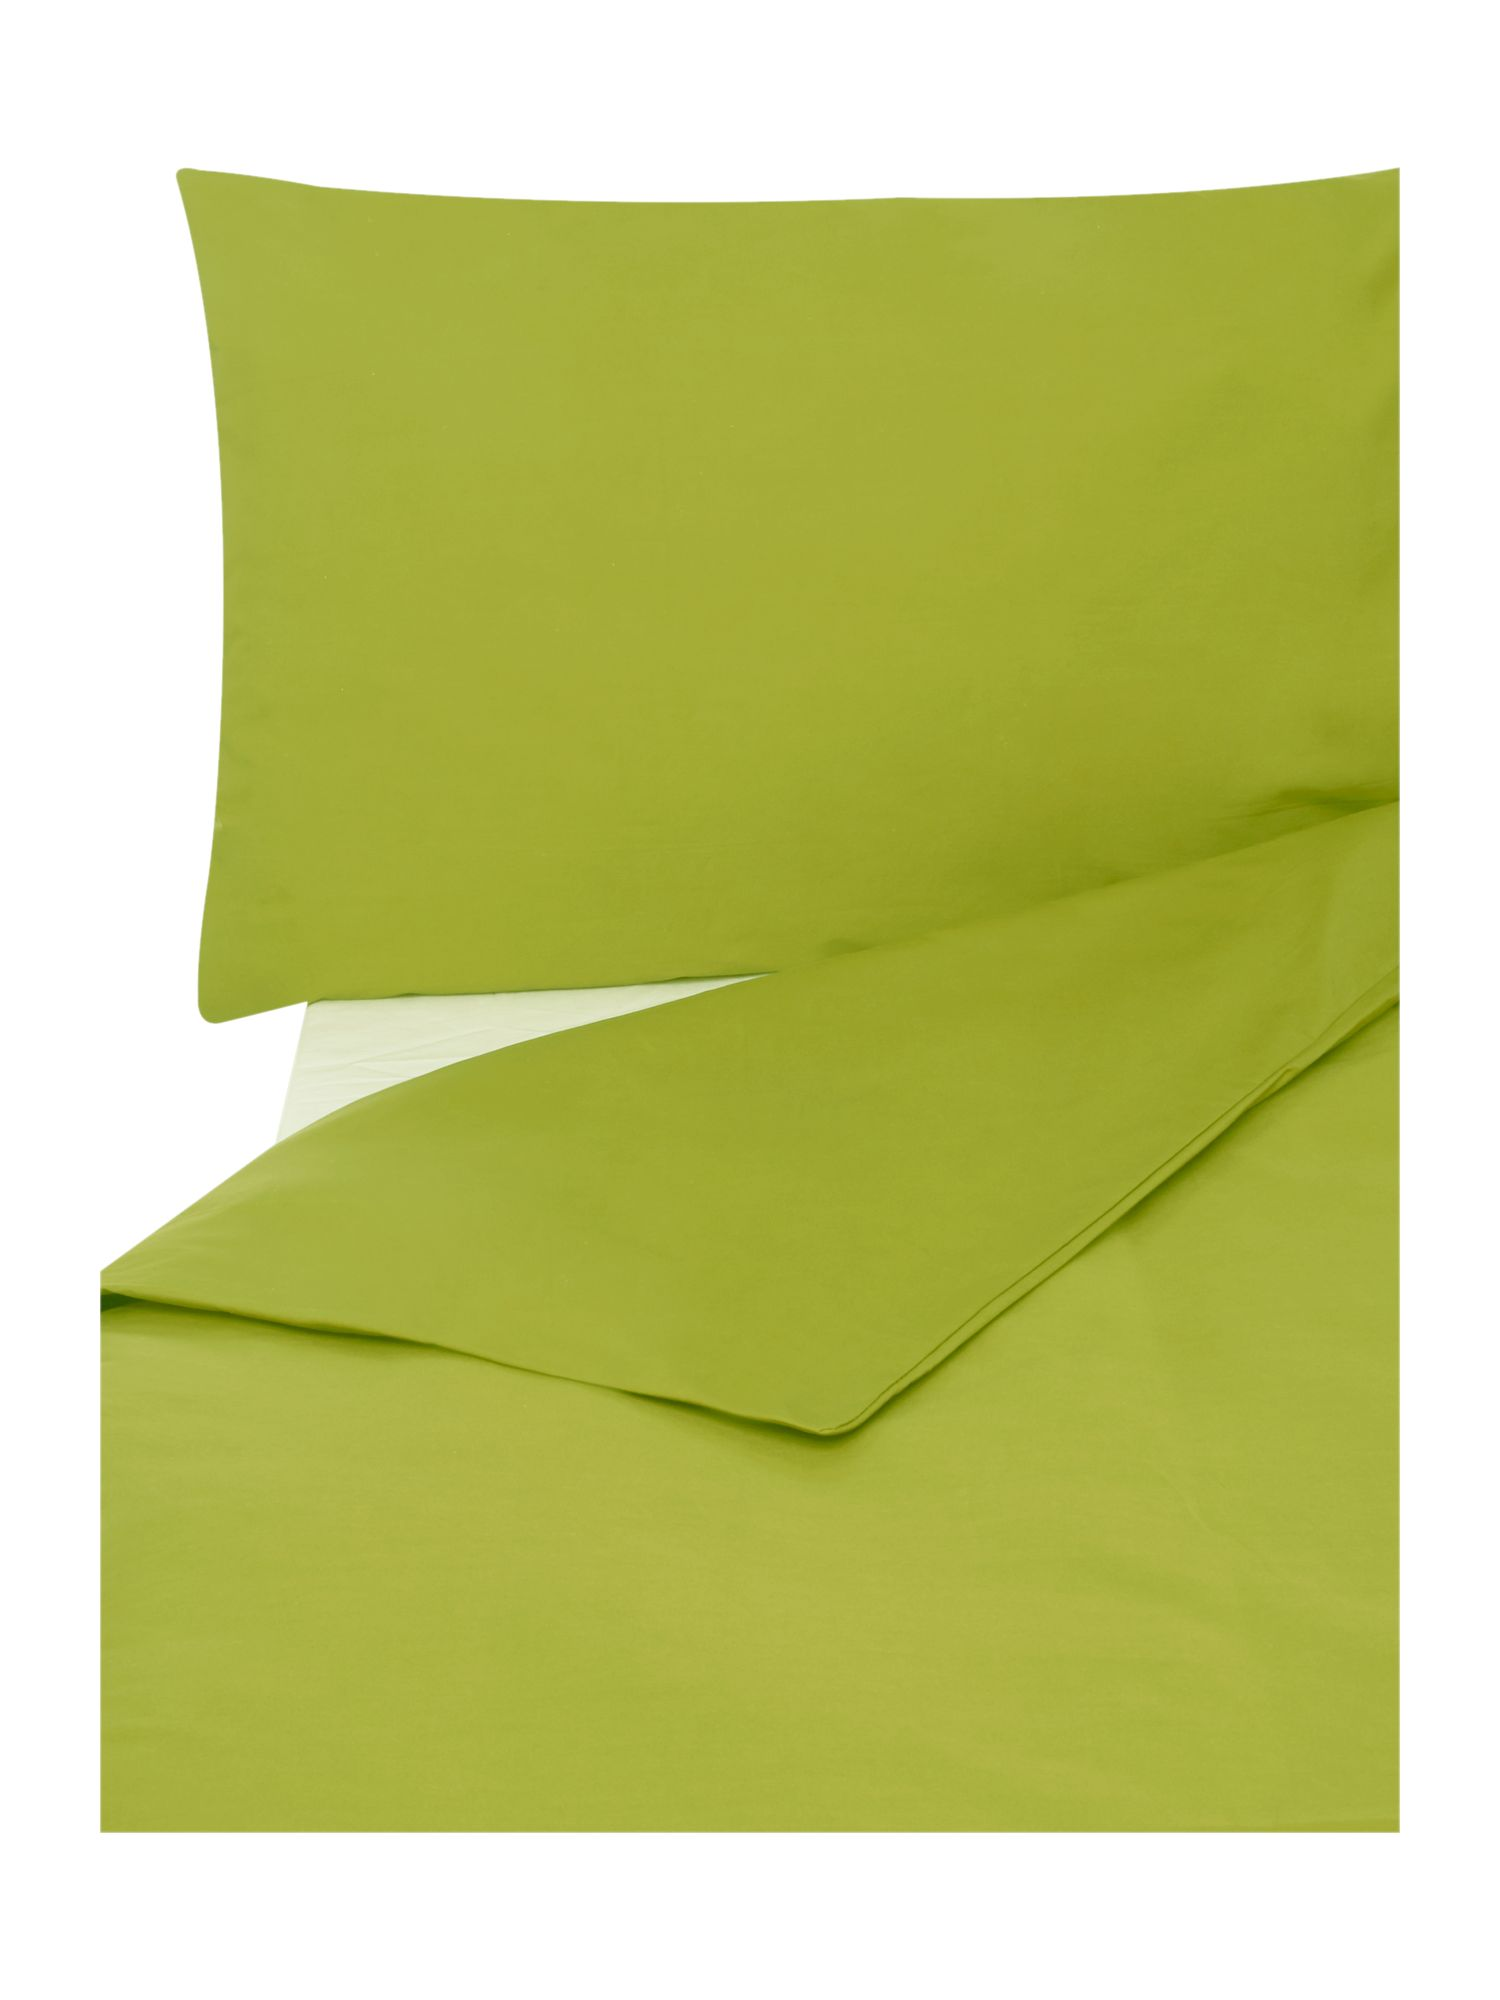 Egyptian cotton bedding range in lime